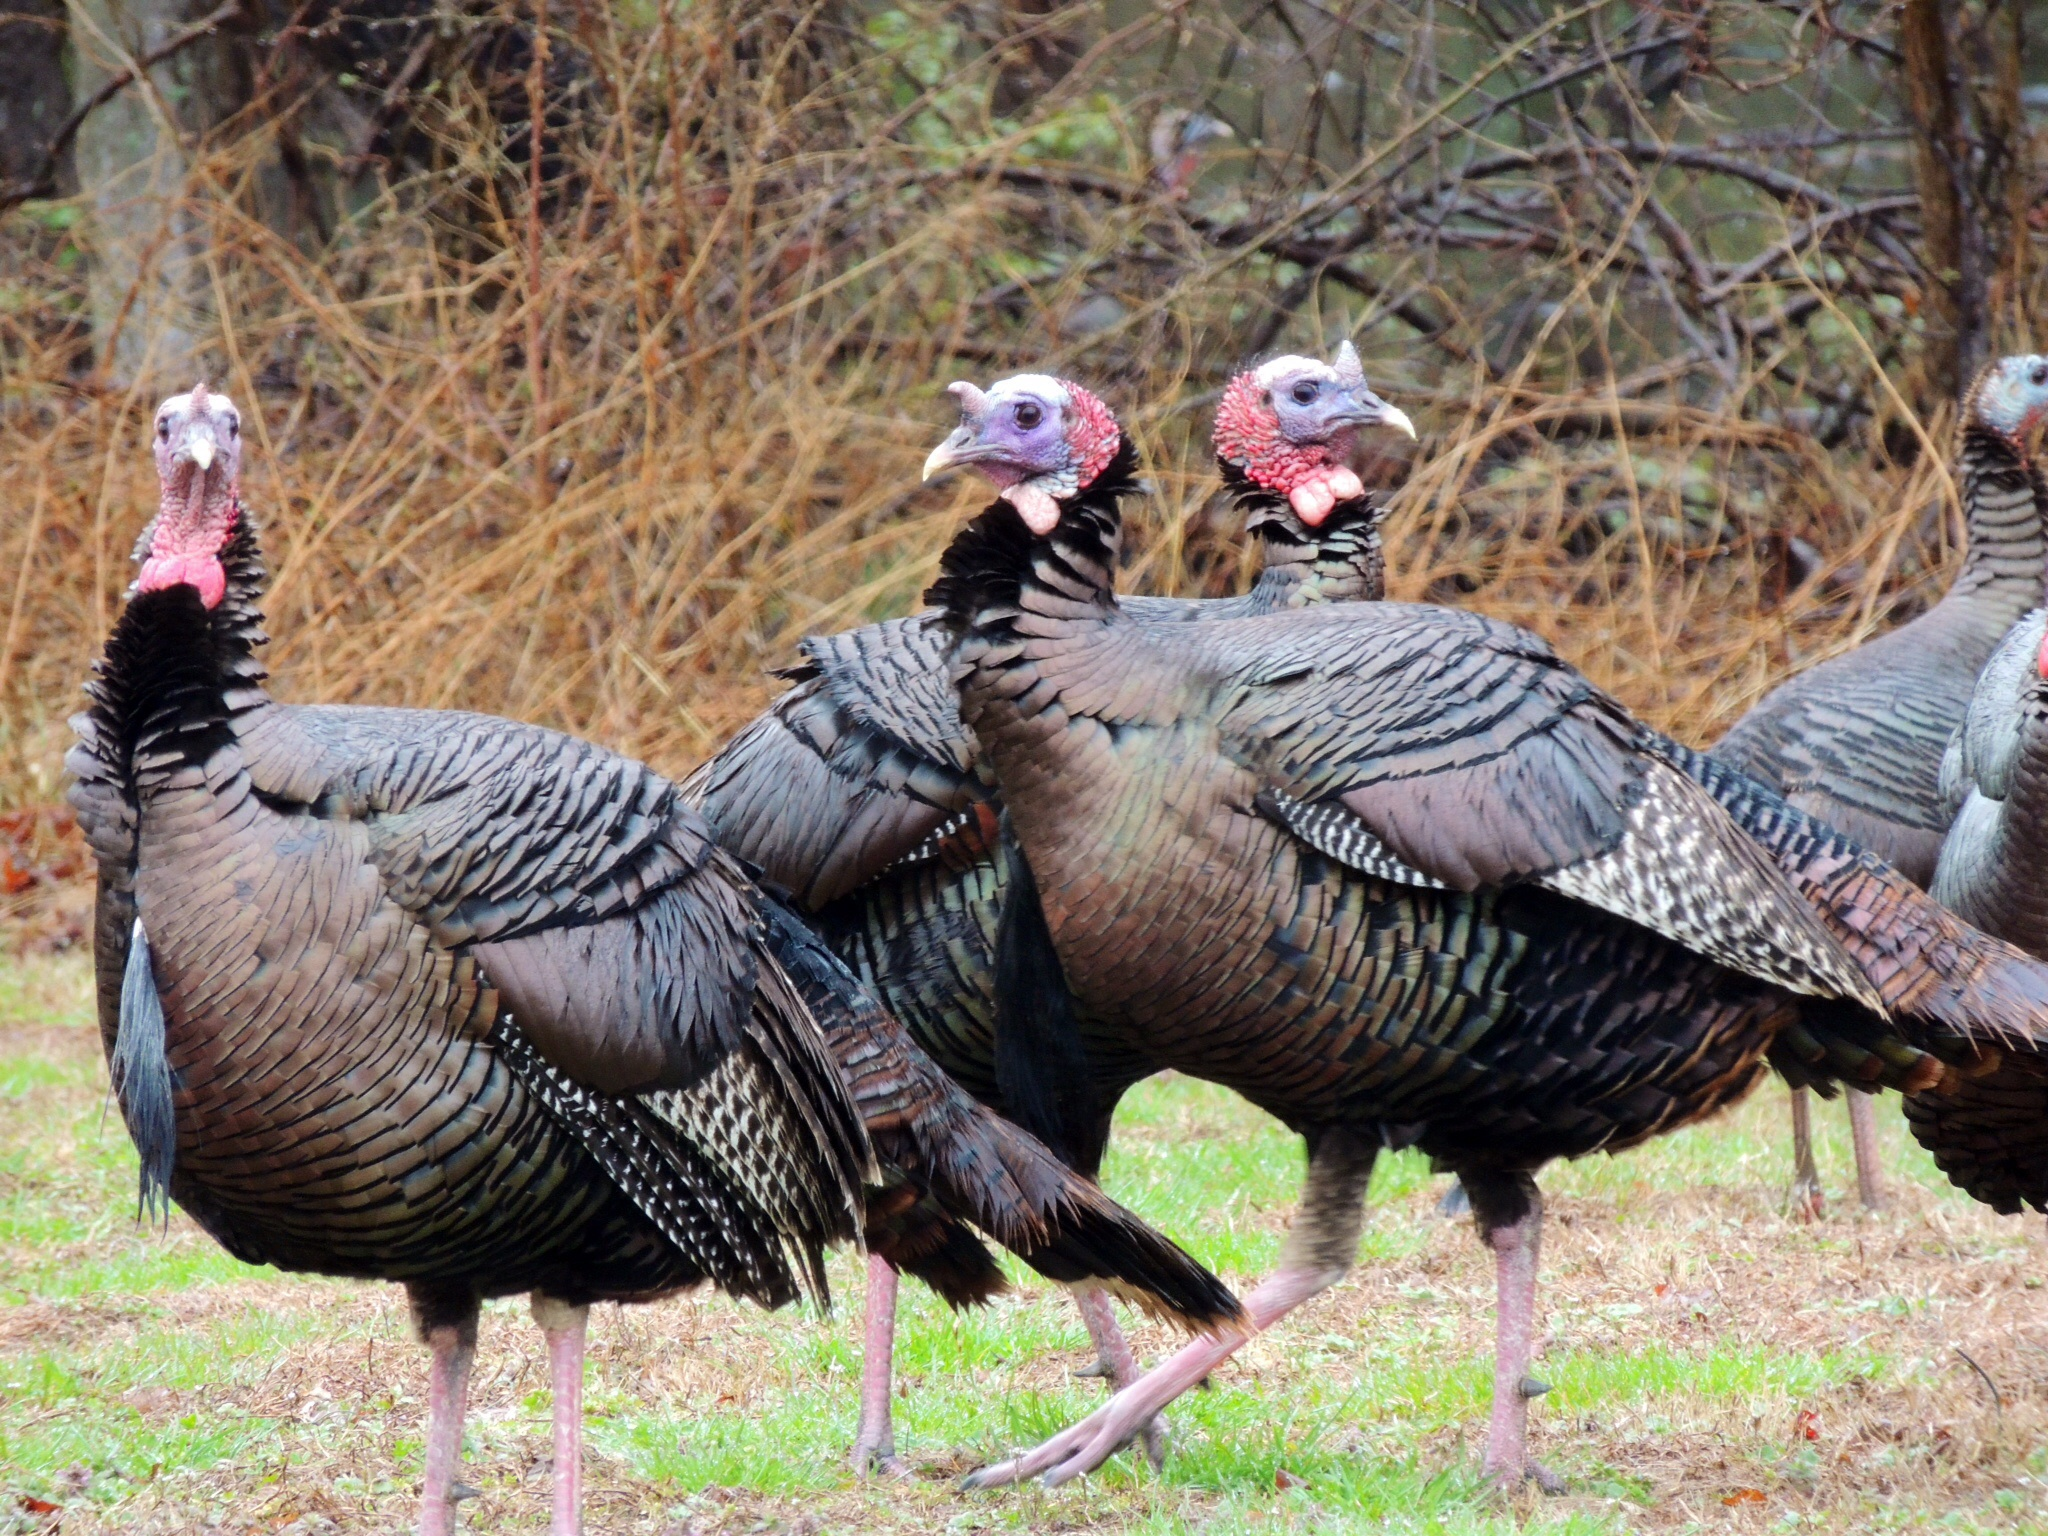 Julie Craves explains what droppings reveal about Wild Turkeys